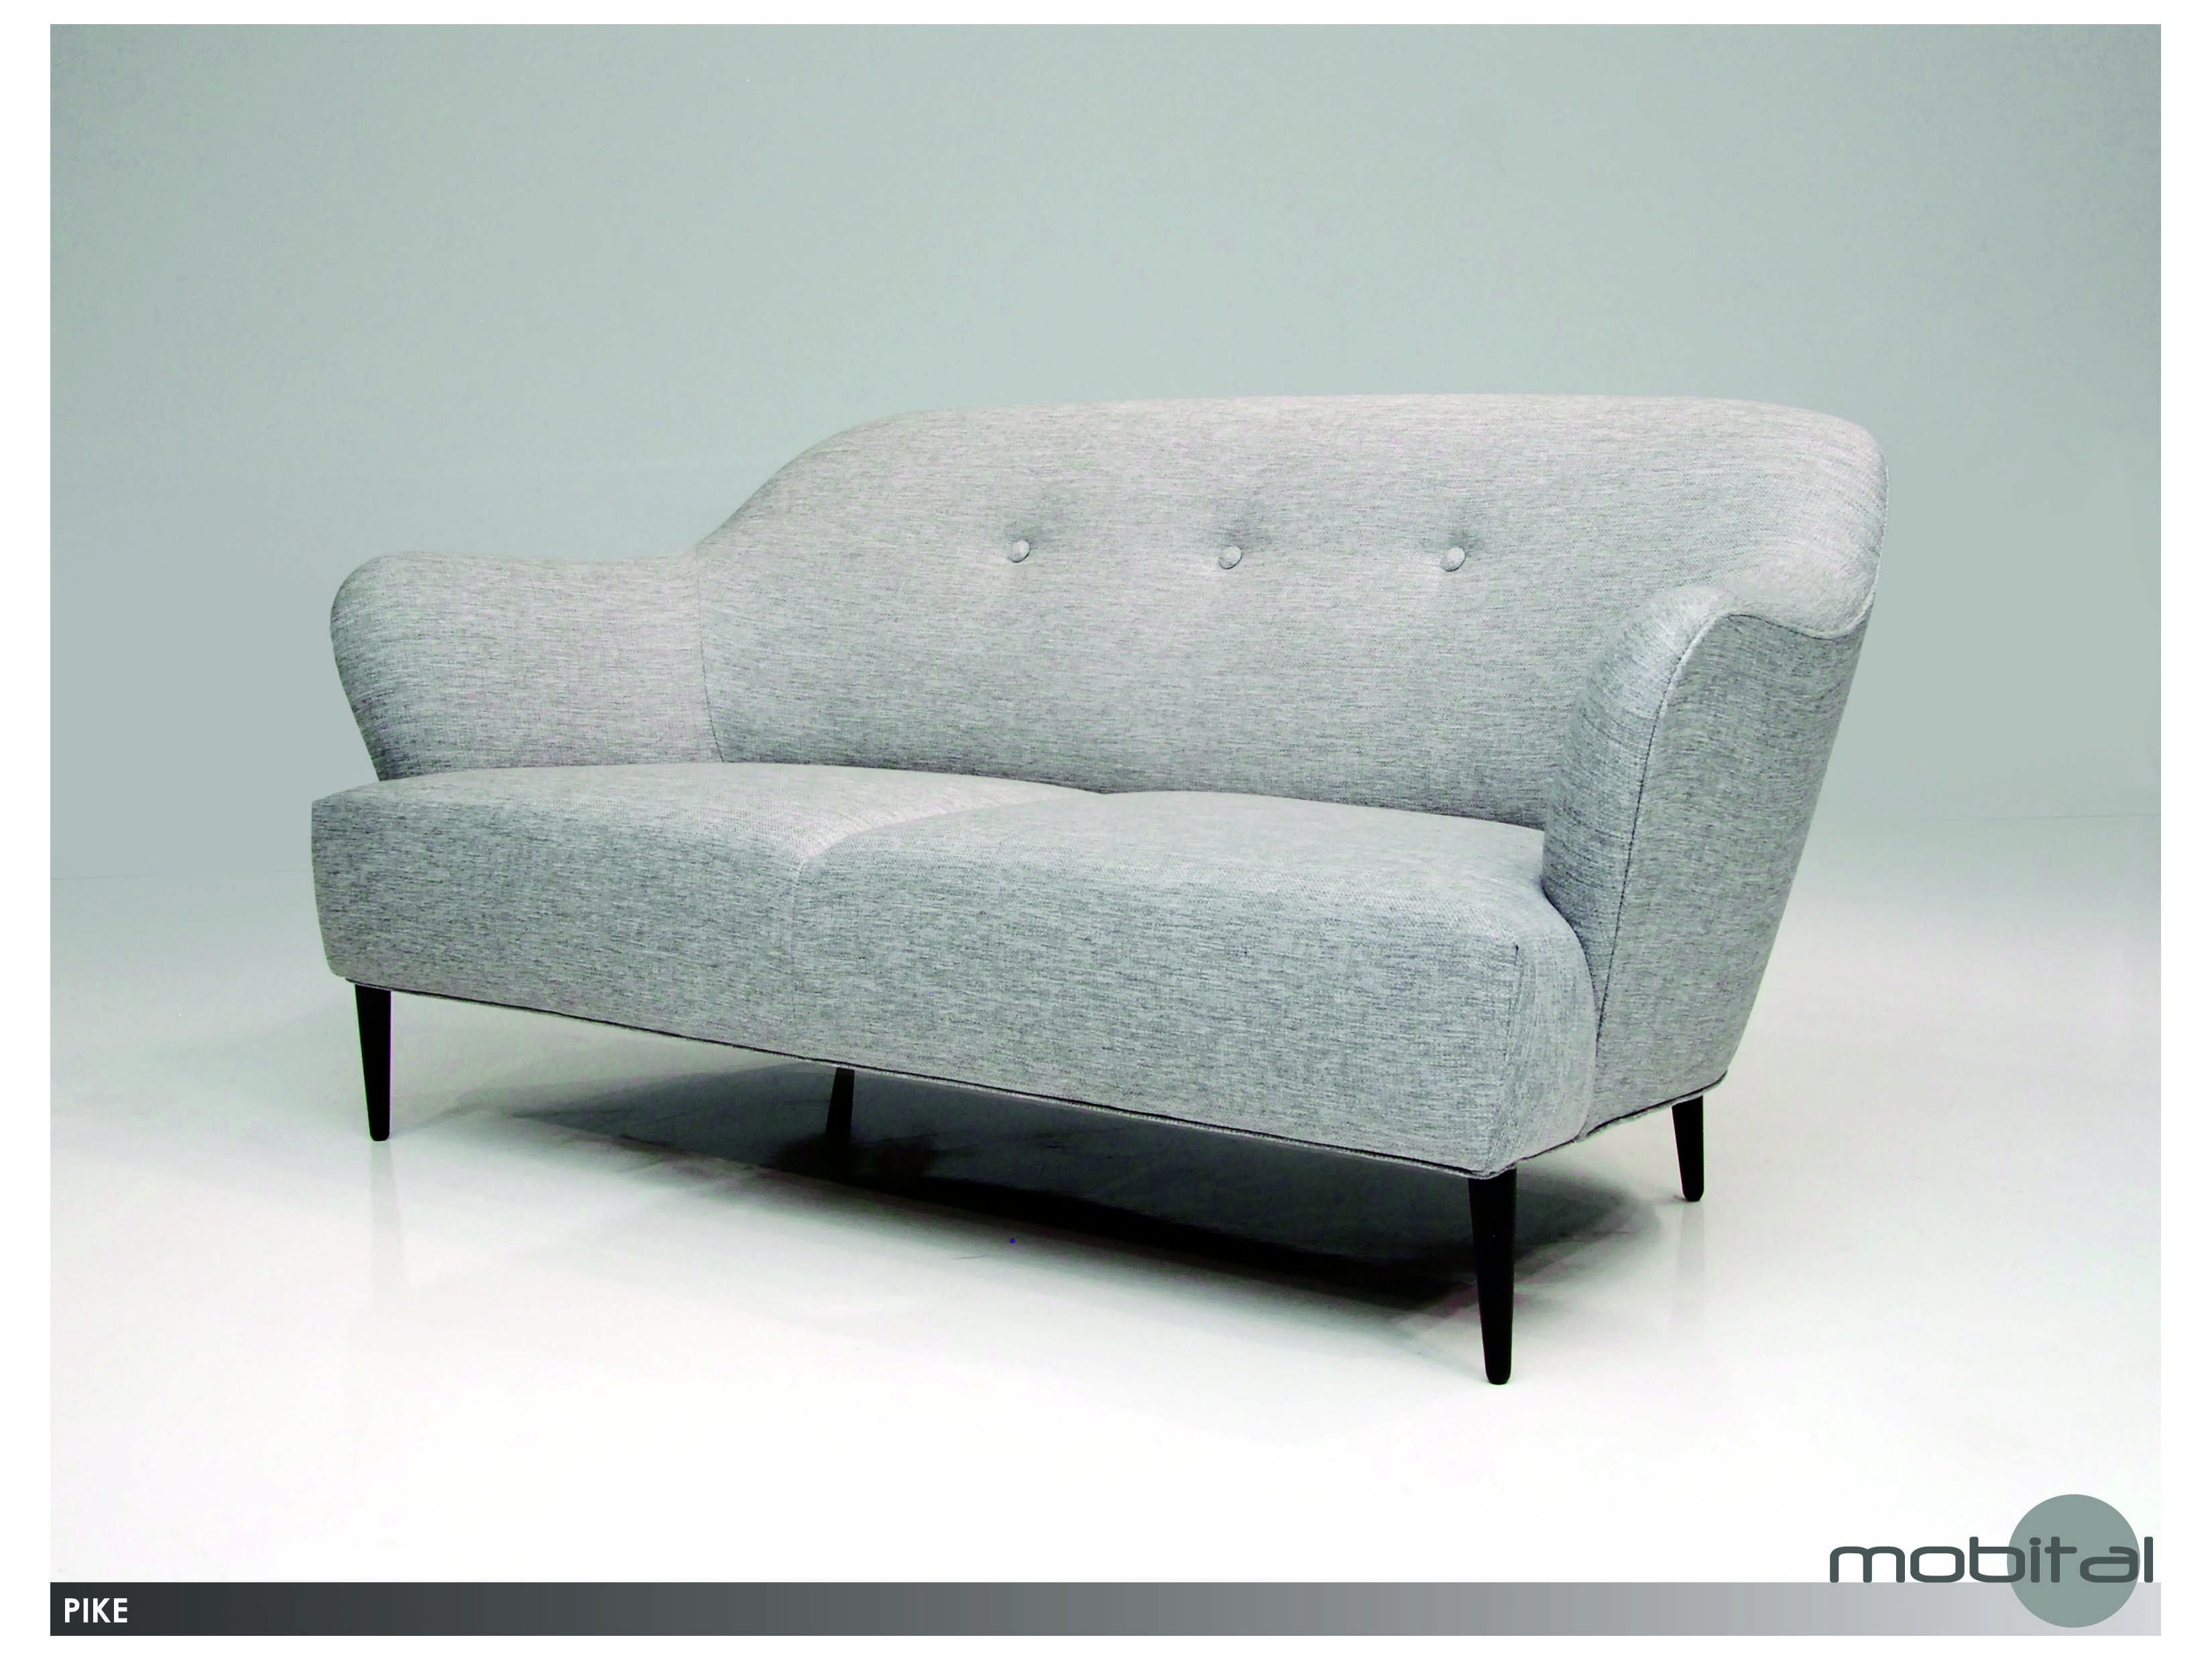 Mobital pike light grey tweed sofa sofpikelgre for Grey tweed couch